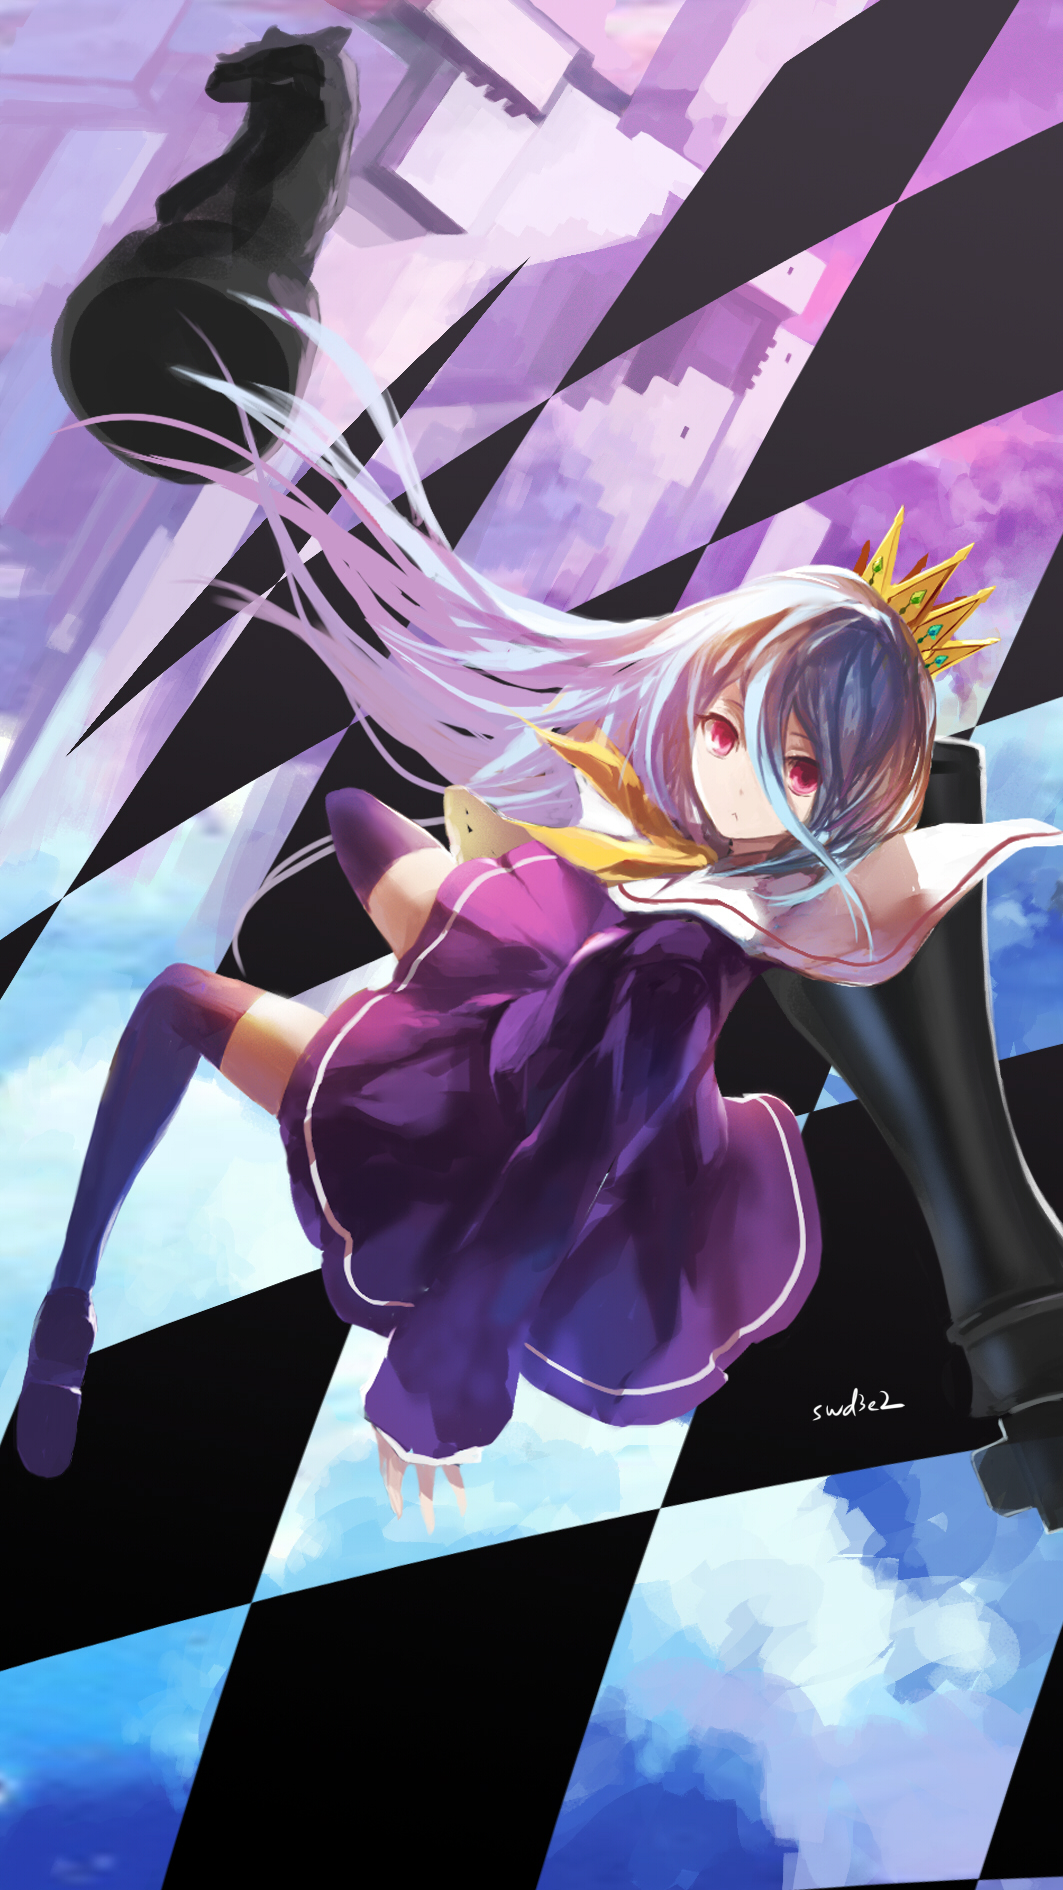 No Game No Life Zerochan Anime Image Board